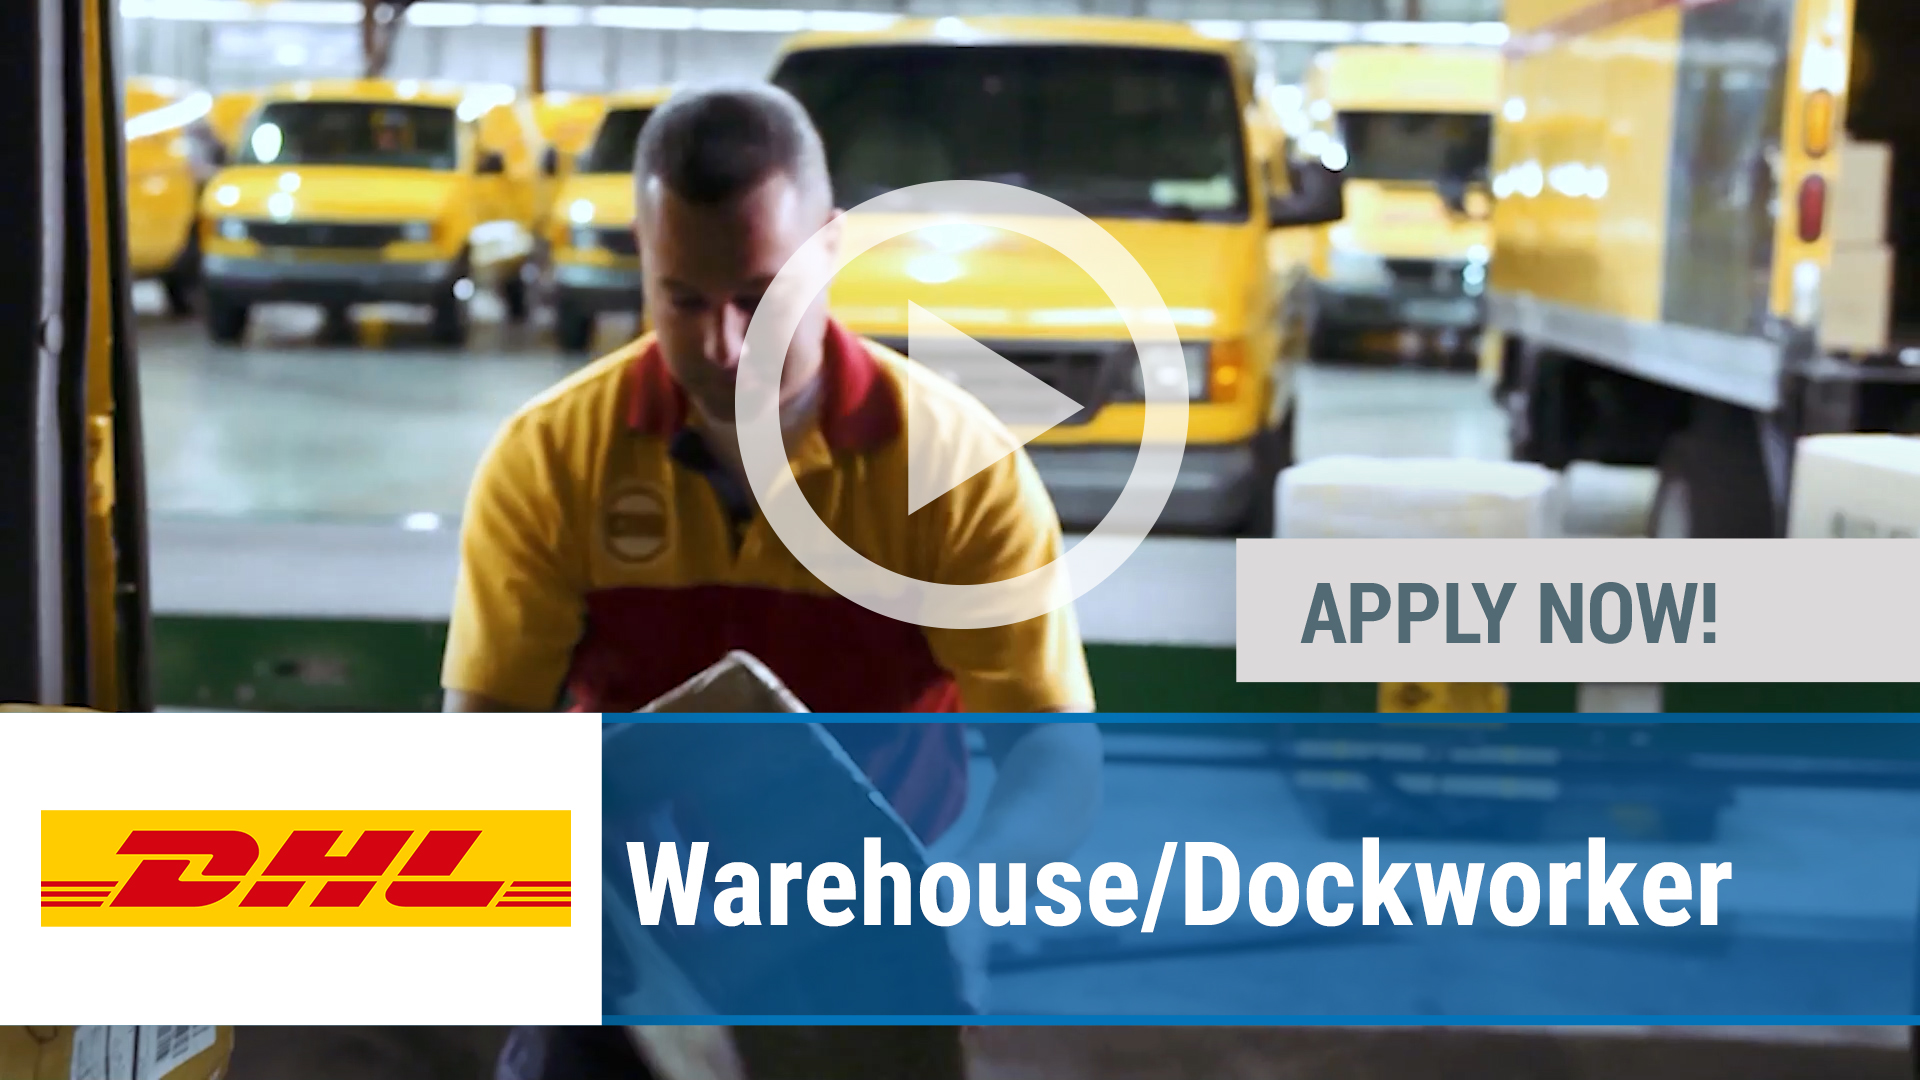 Watch our careers video for available job opening Warehouse_Dockworker in O'Hare, Chicago, IL, USA